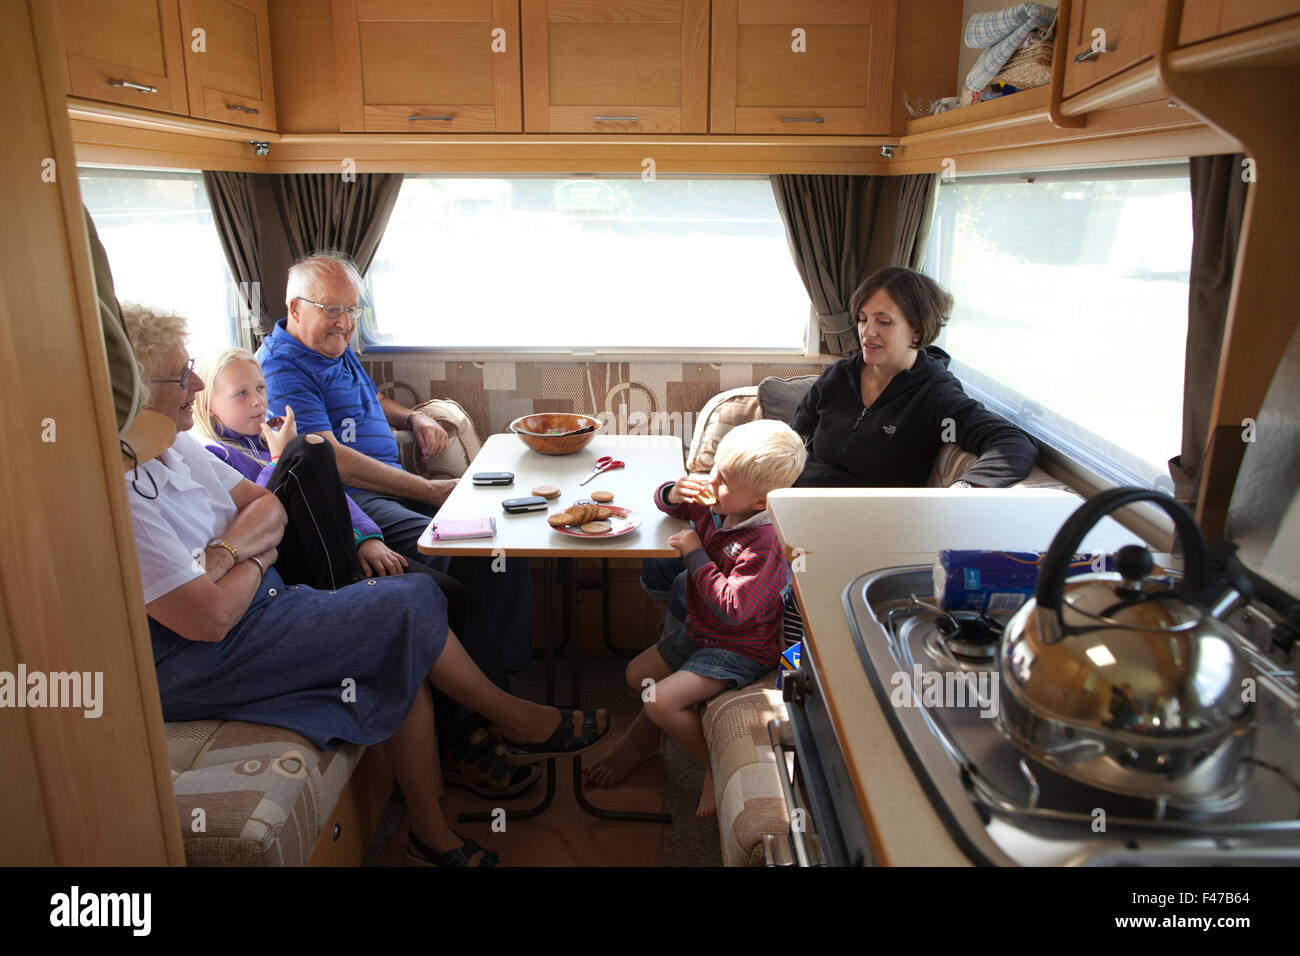 English family enjoying their leisure time whilst on holiday together in a caravan, England, UK - Stock Image